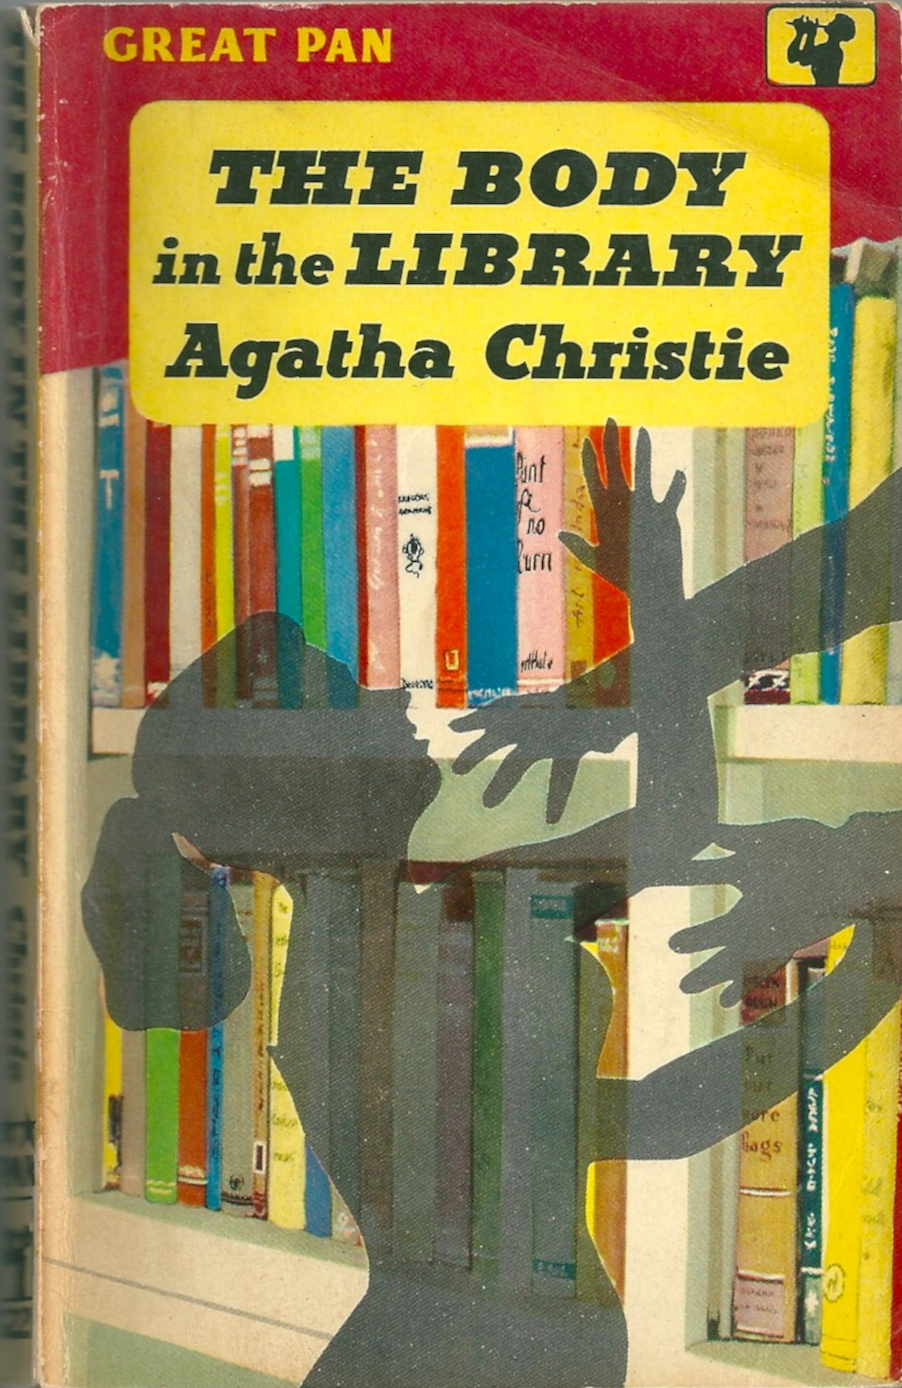 Agatha Christie, The Body in the Library, 1959 Pan edn.